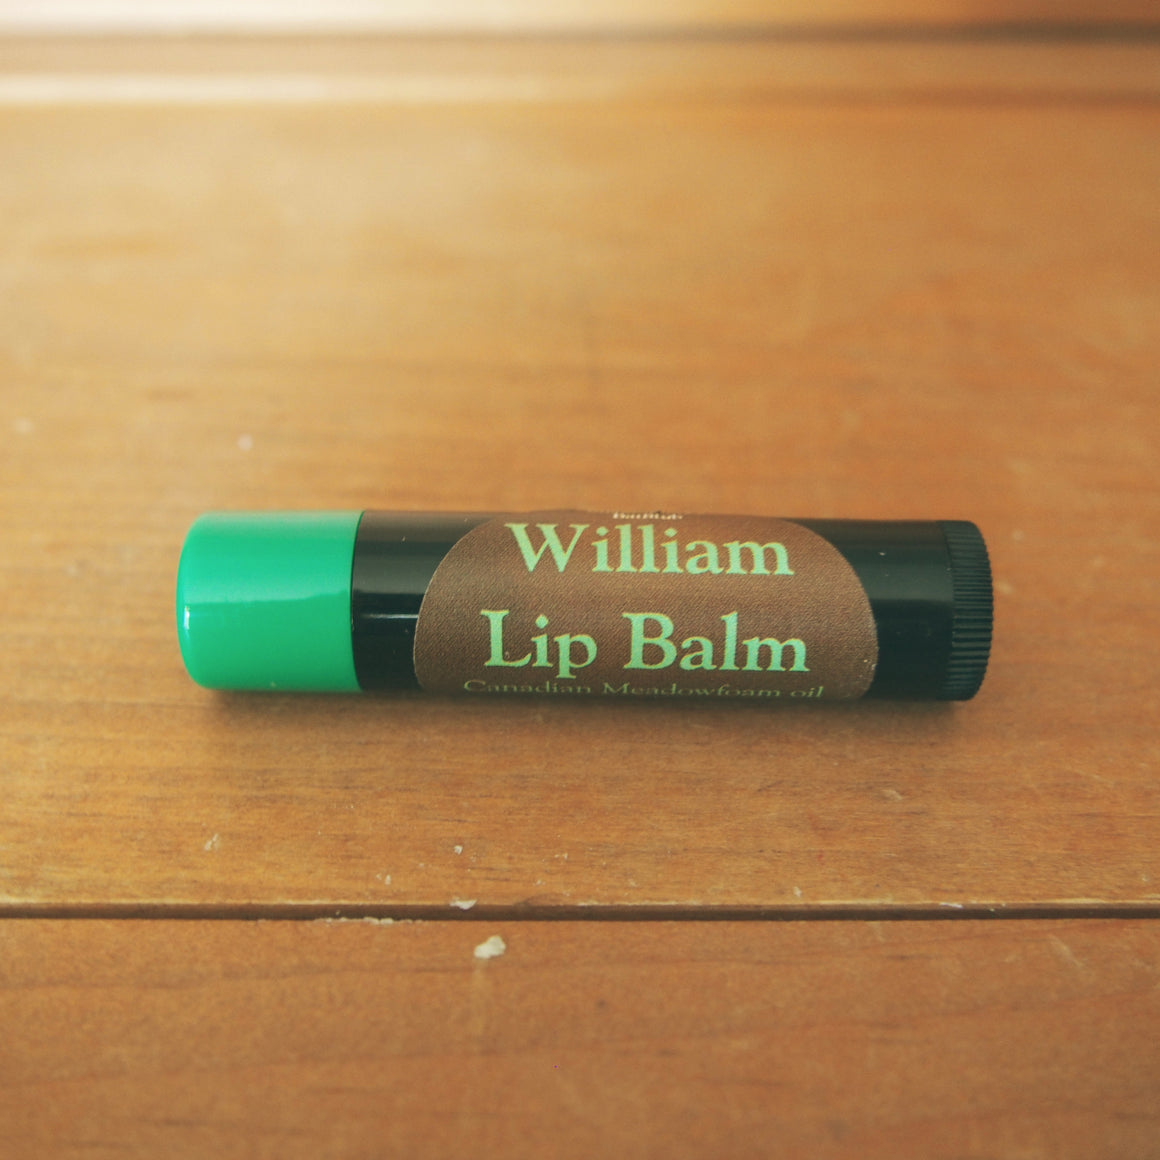 William Lip Balm